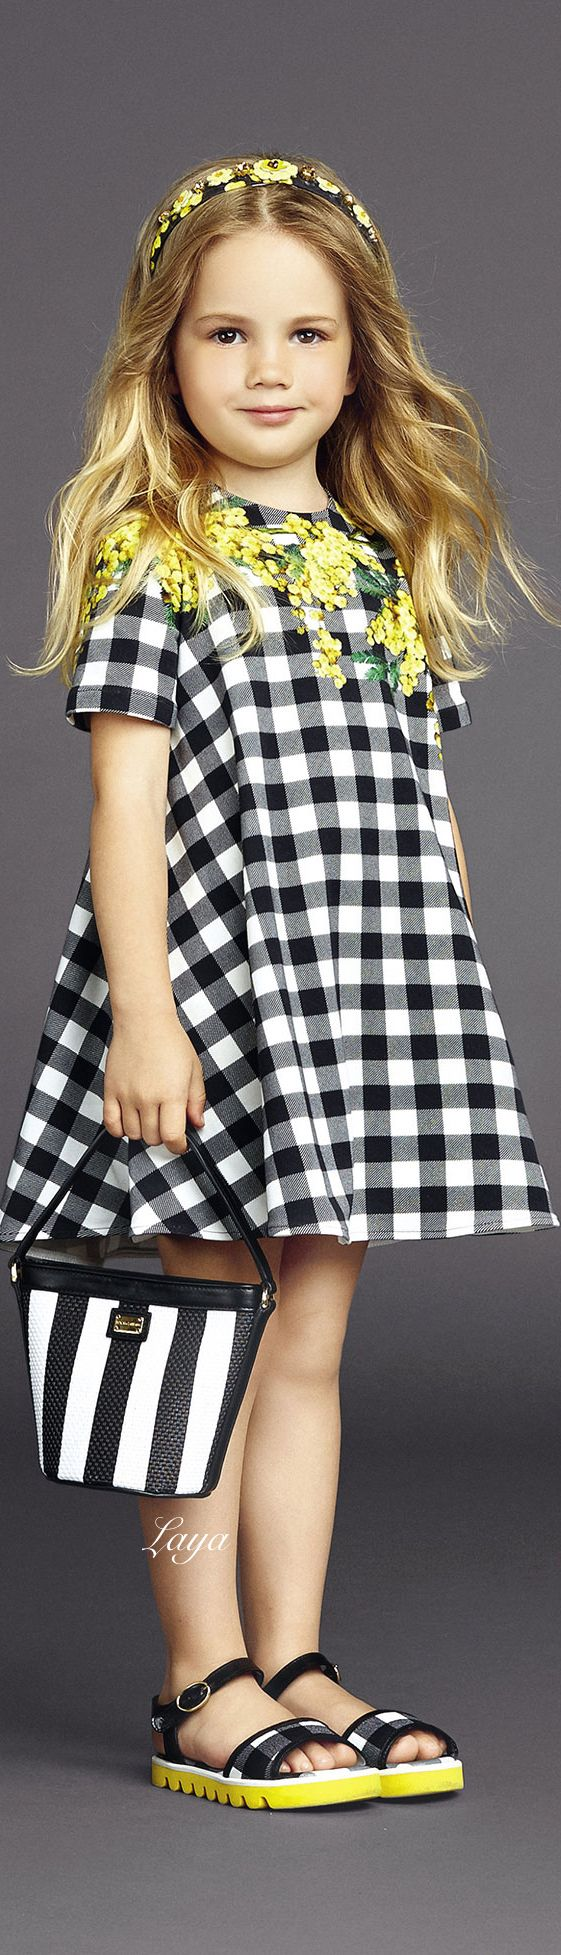 Adorable in black & white checks, she is ready to hit the birthday party in style.